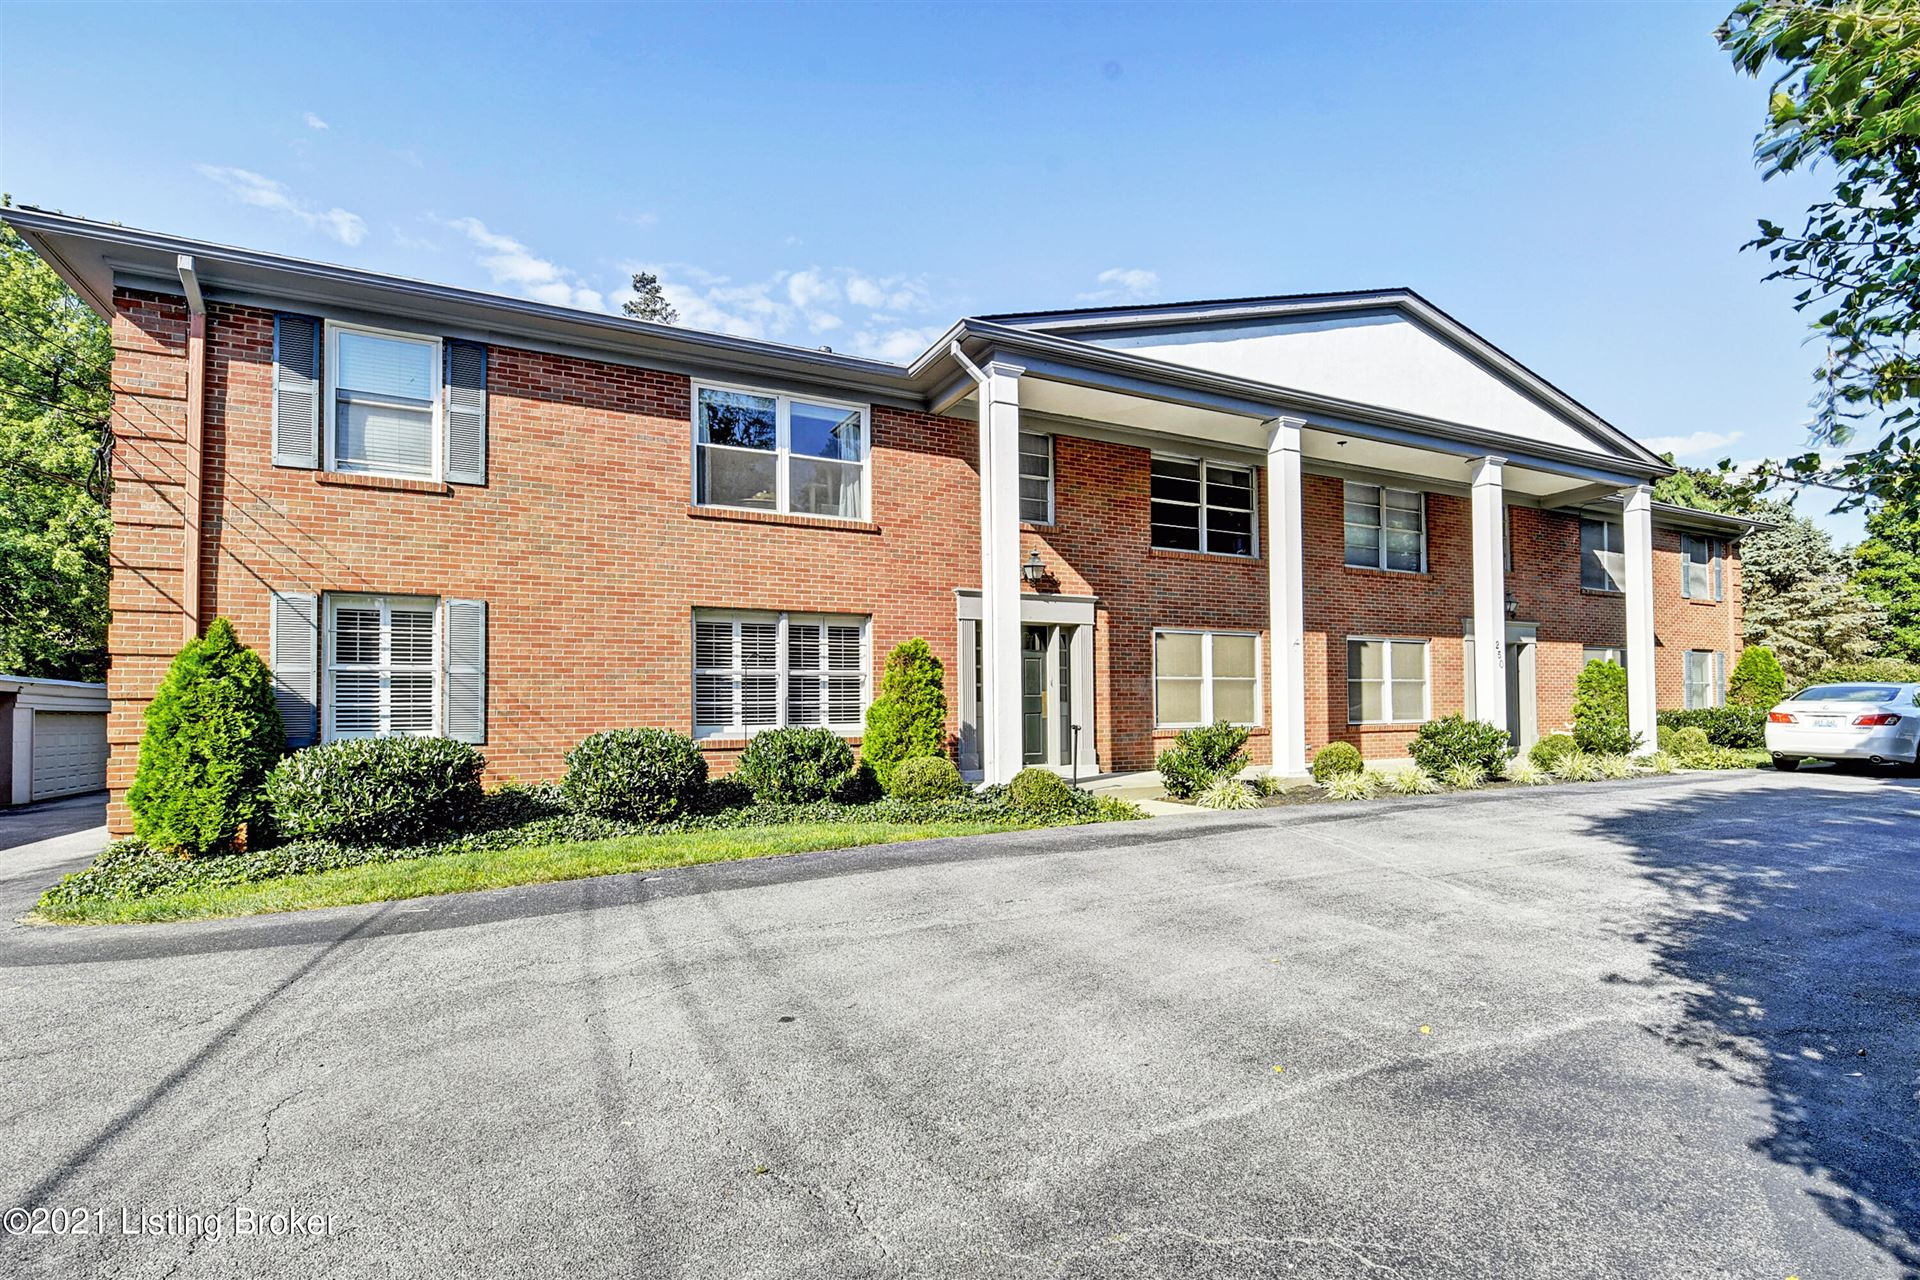 Photo for 250 Chenoweth Ln #1, Louisville, KY 40207 (MLS # 1596268)